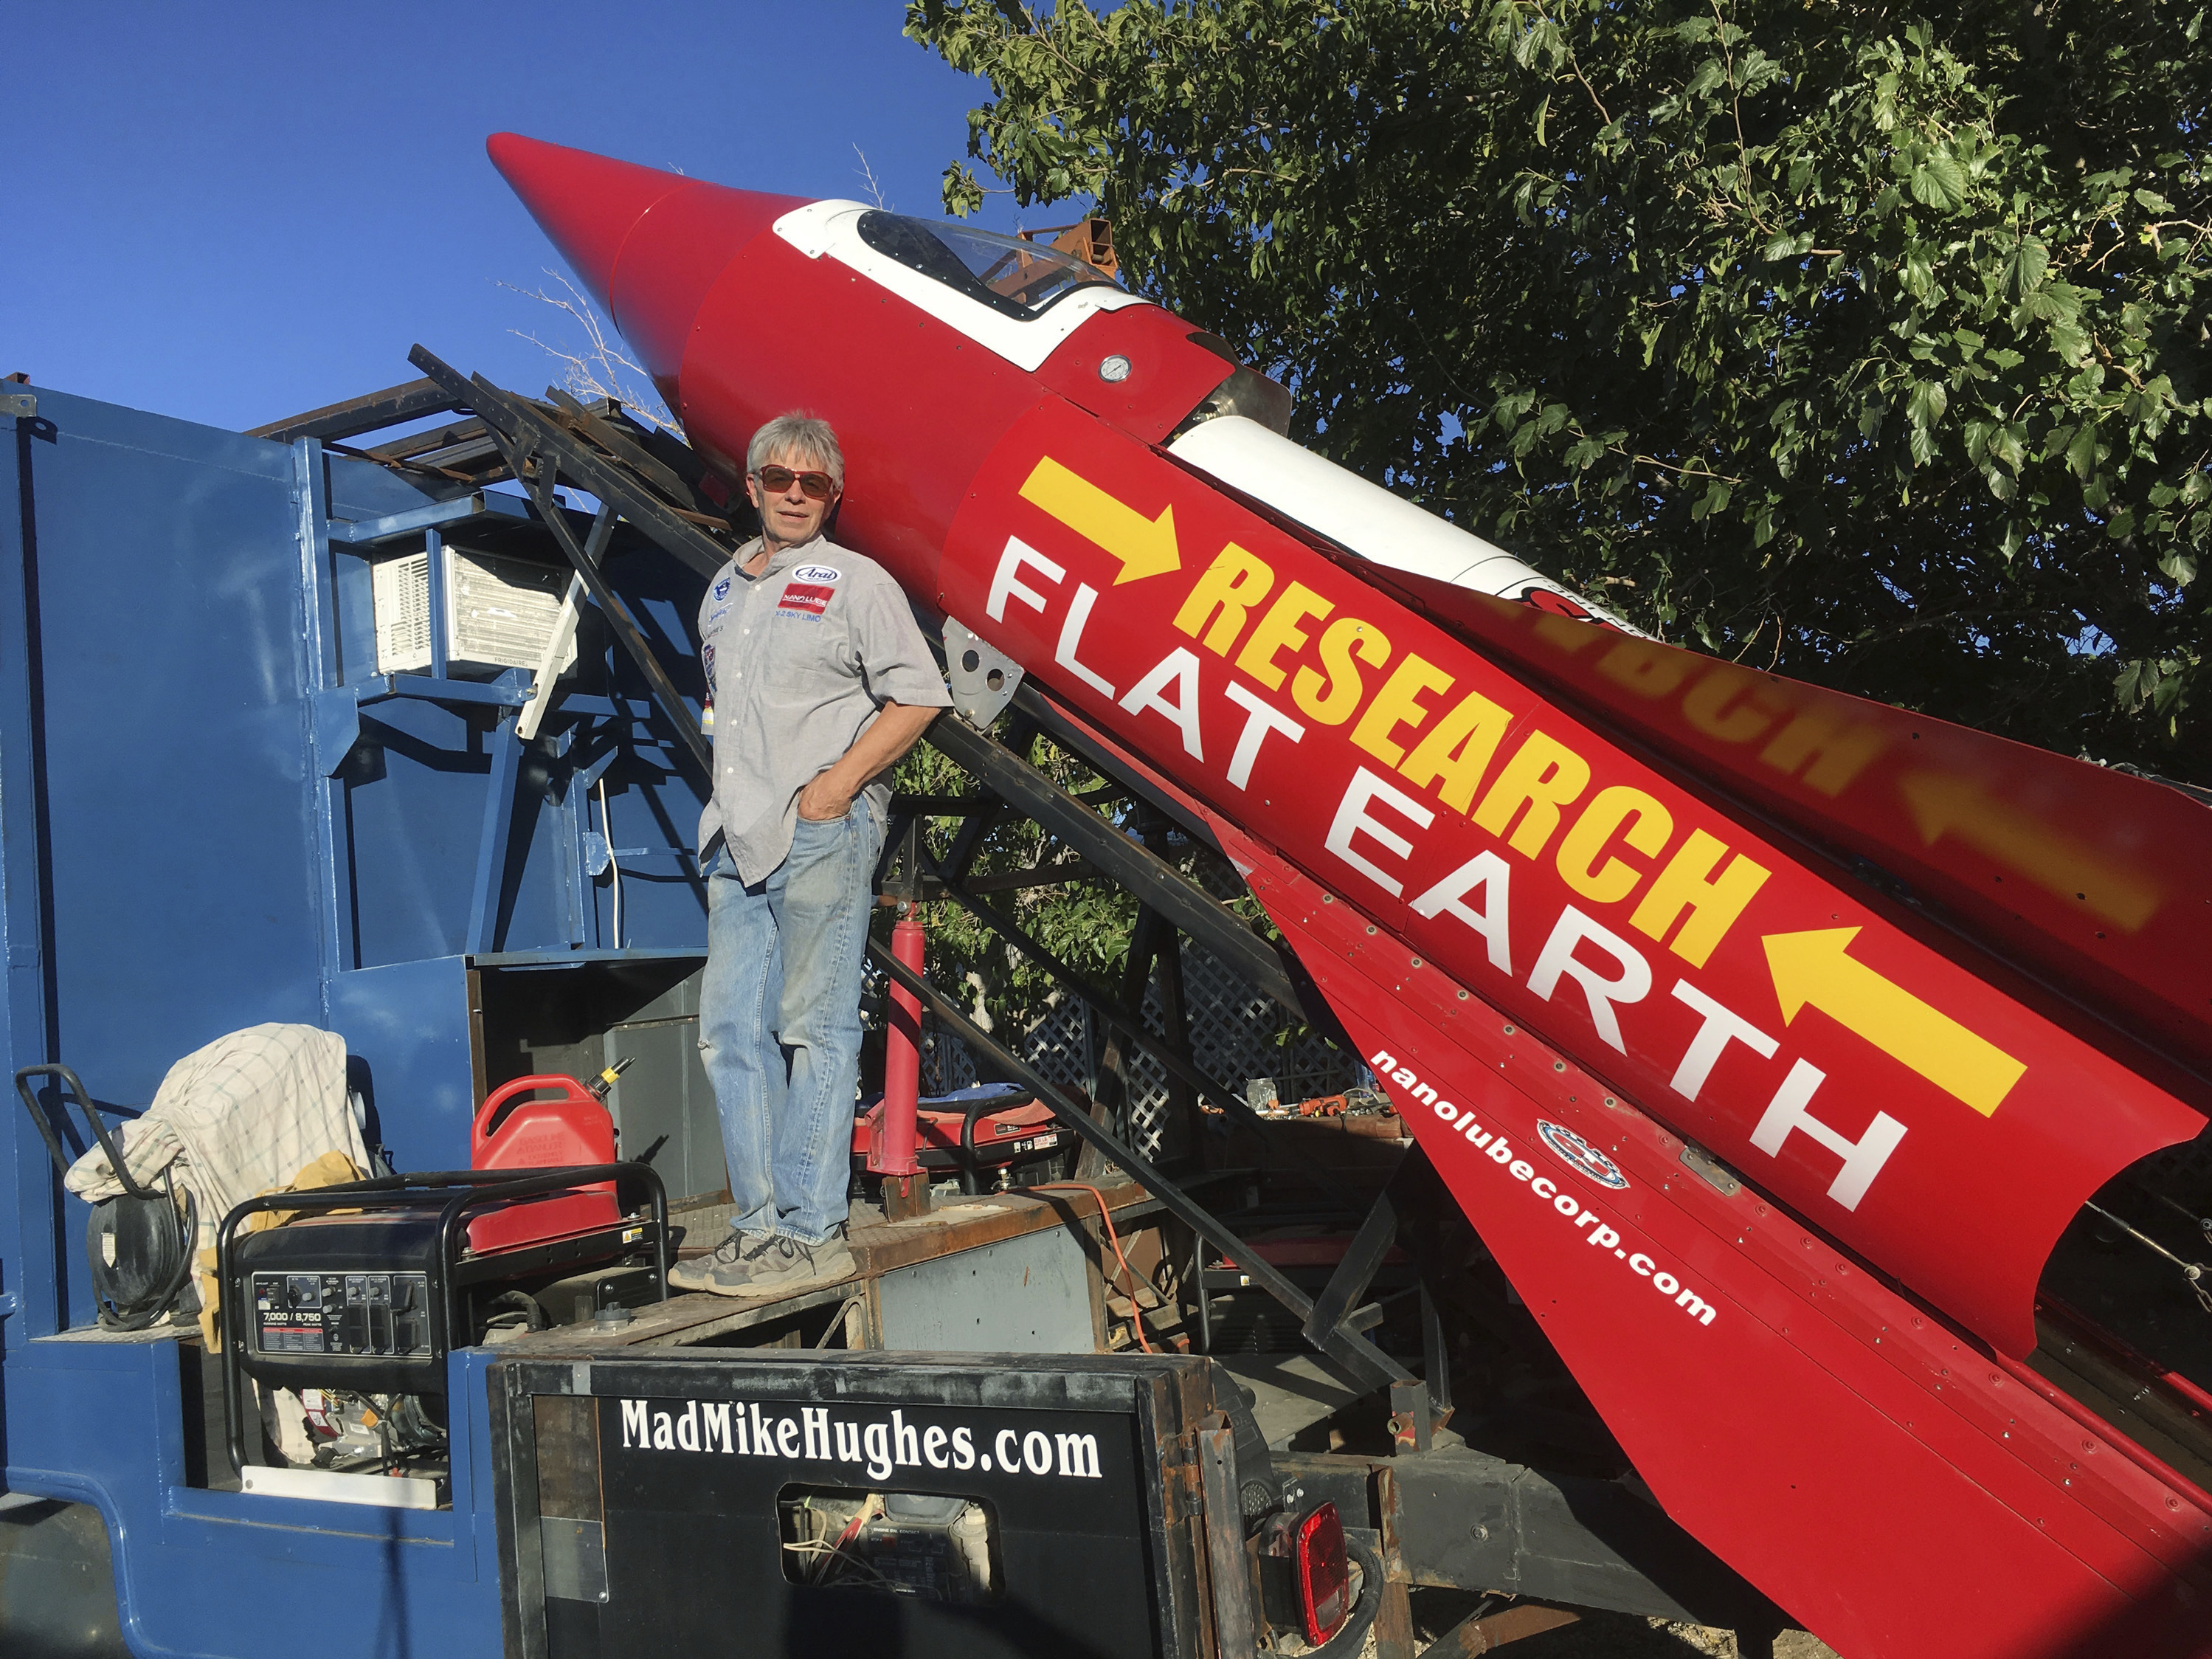 Flat Earth Believer To Launch Steam-Powered Rocket